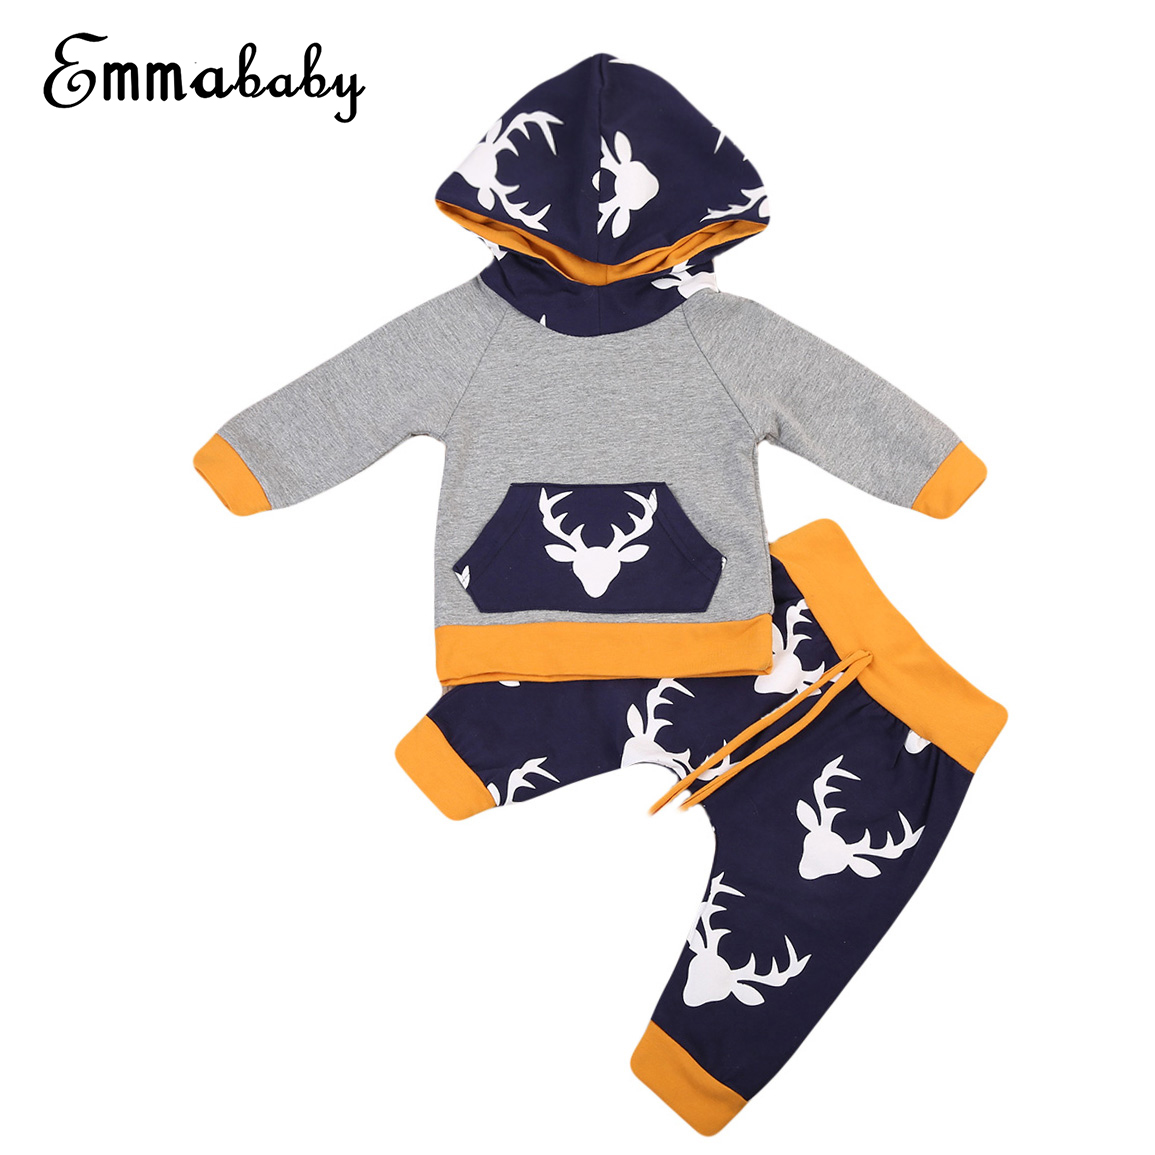 Babies Xmas Clothing Sets Infant Baby Girl Hooded Tops Sweatshirt Pants Outfits Christmas Clothes Set